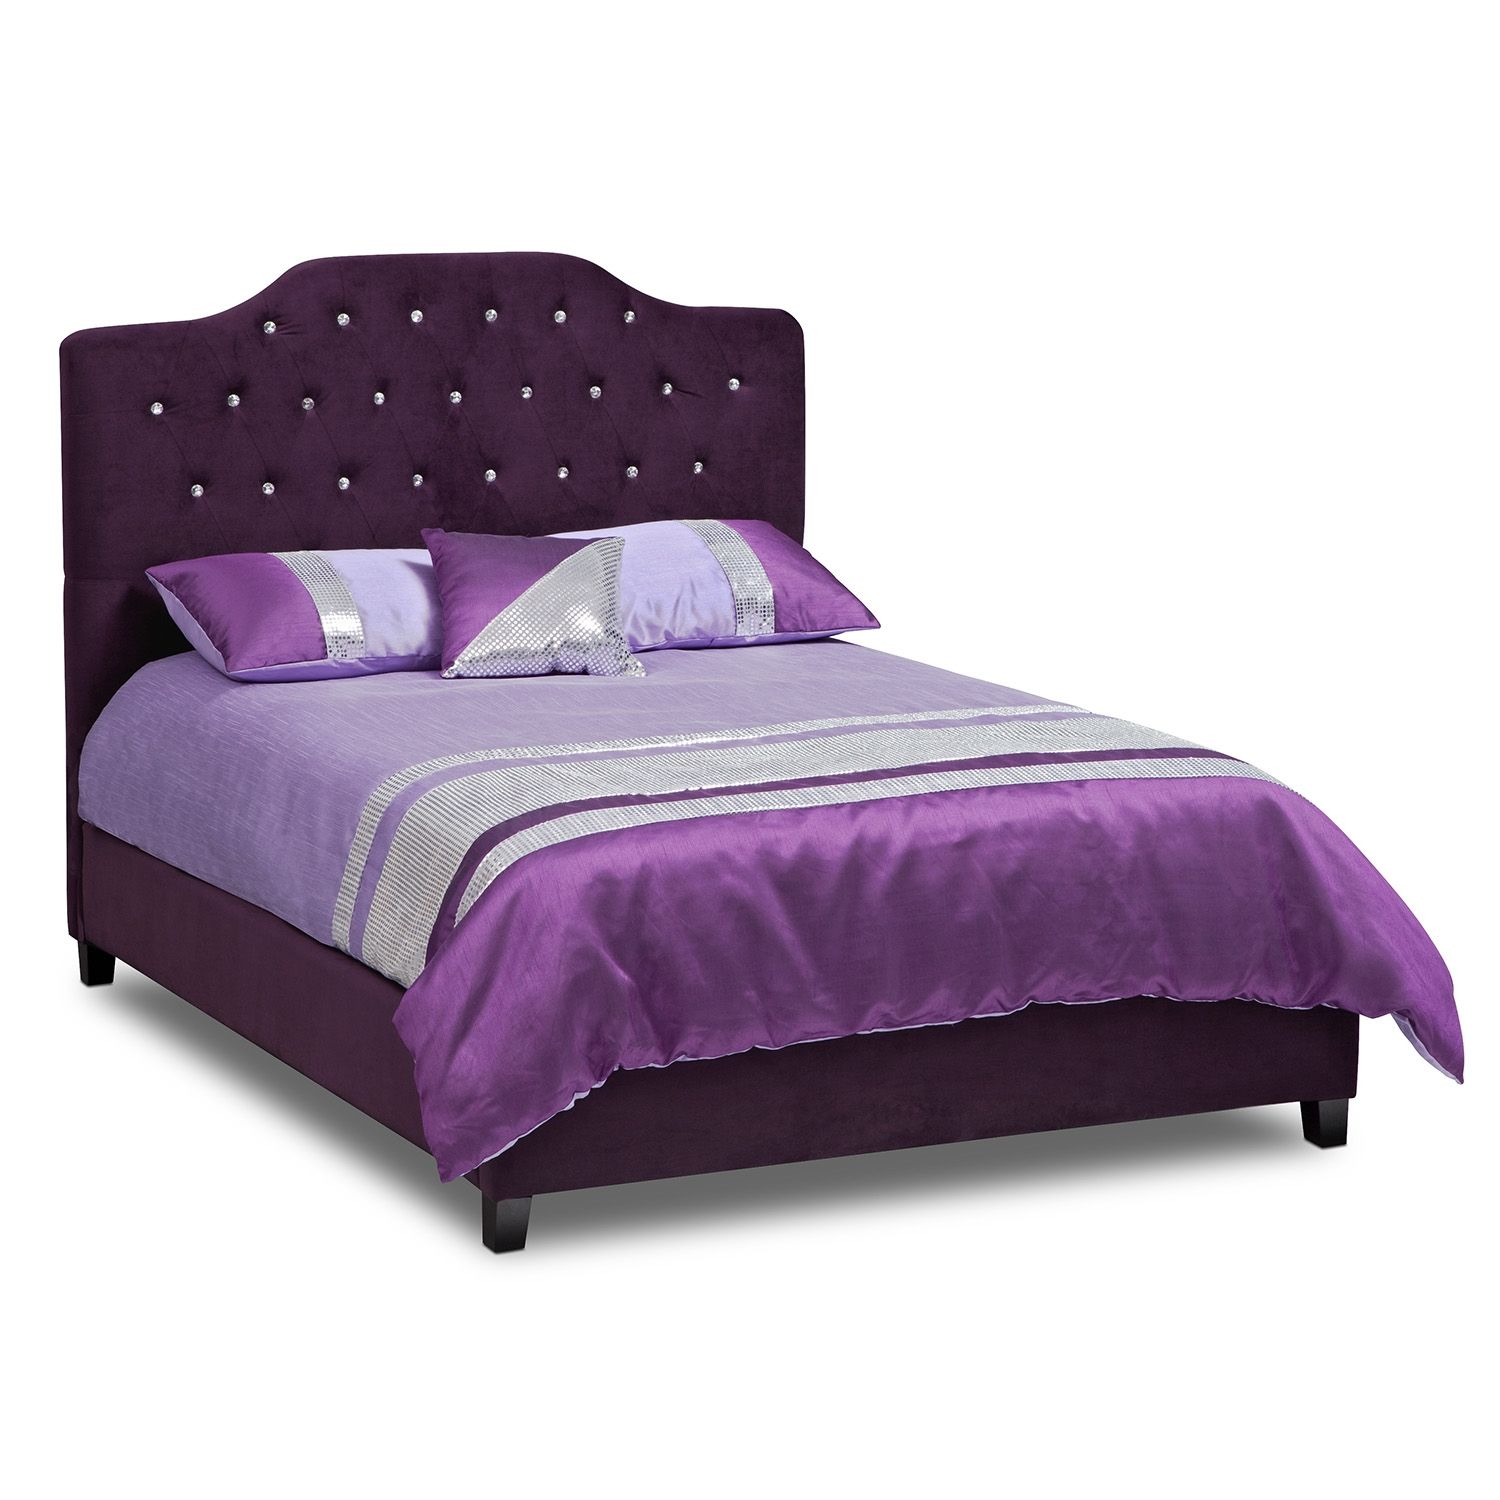 Bedroom Furniture Valerie Ii Queen Bed Glam Time Pinterest Queen Beds Bedrooms And